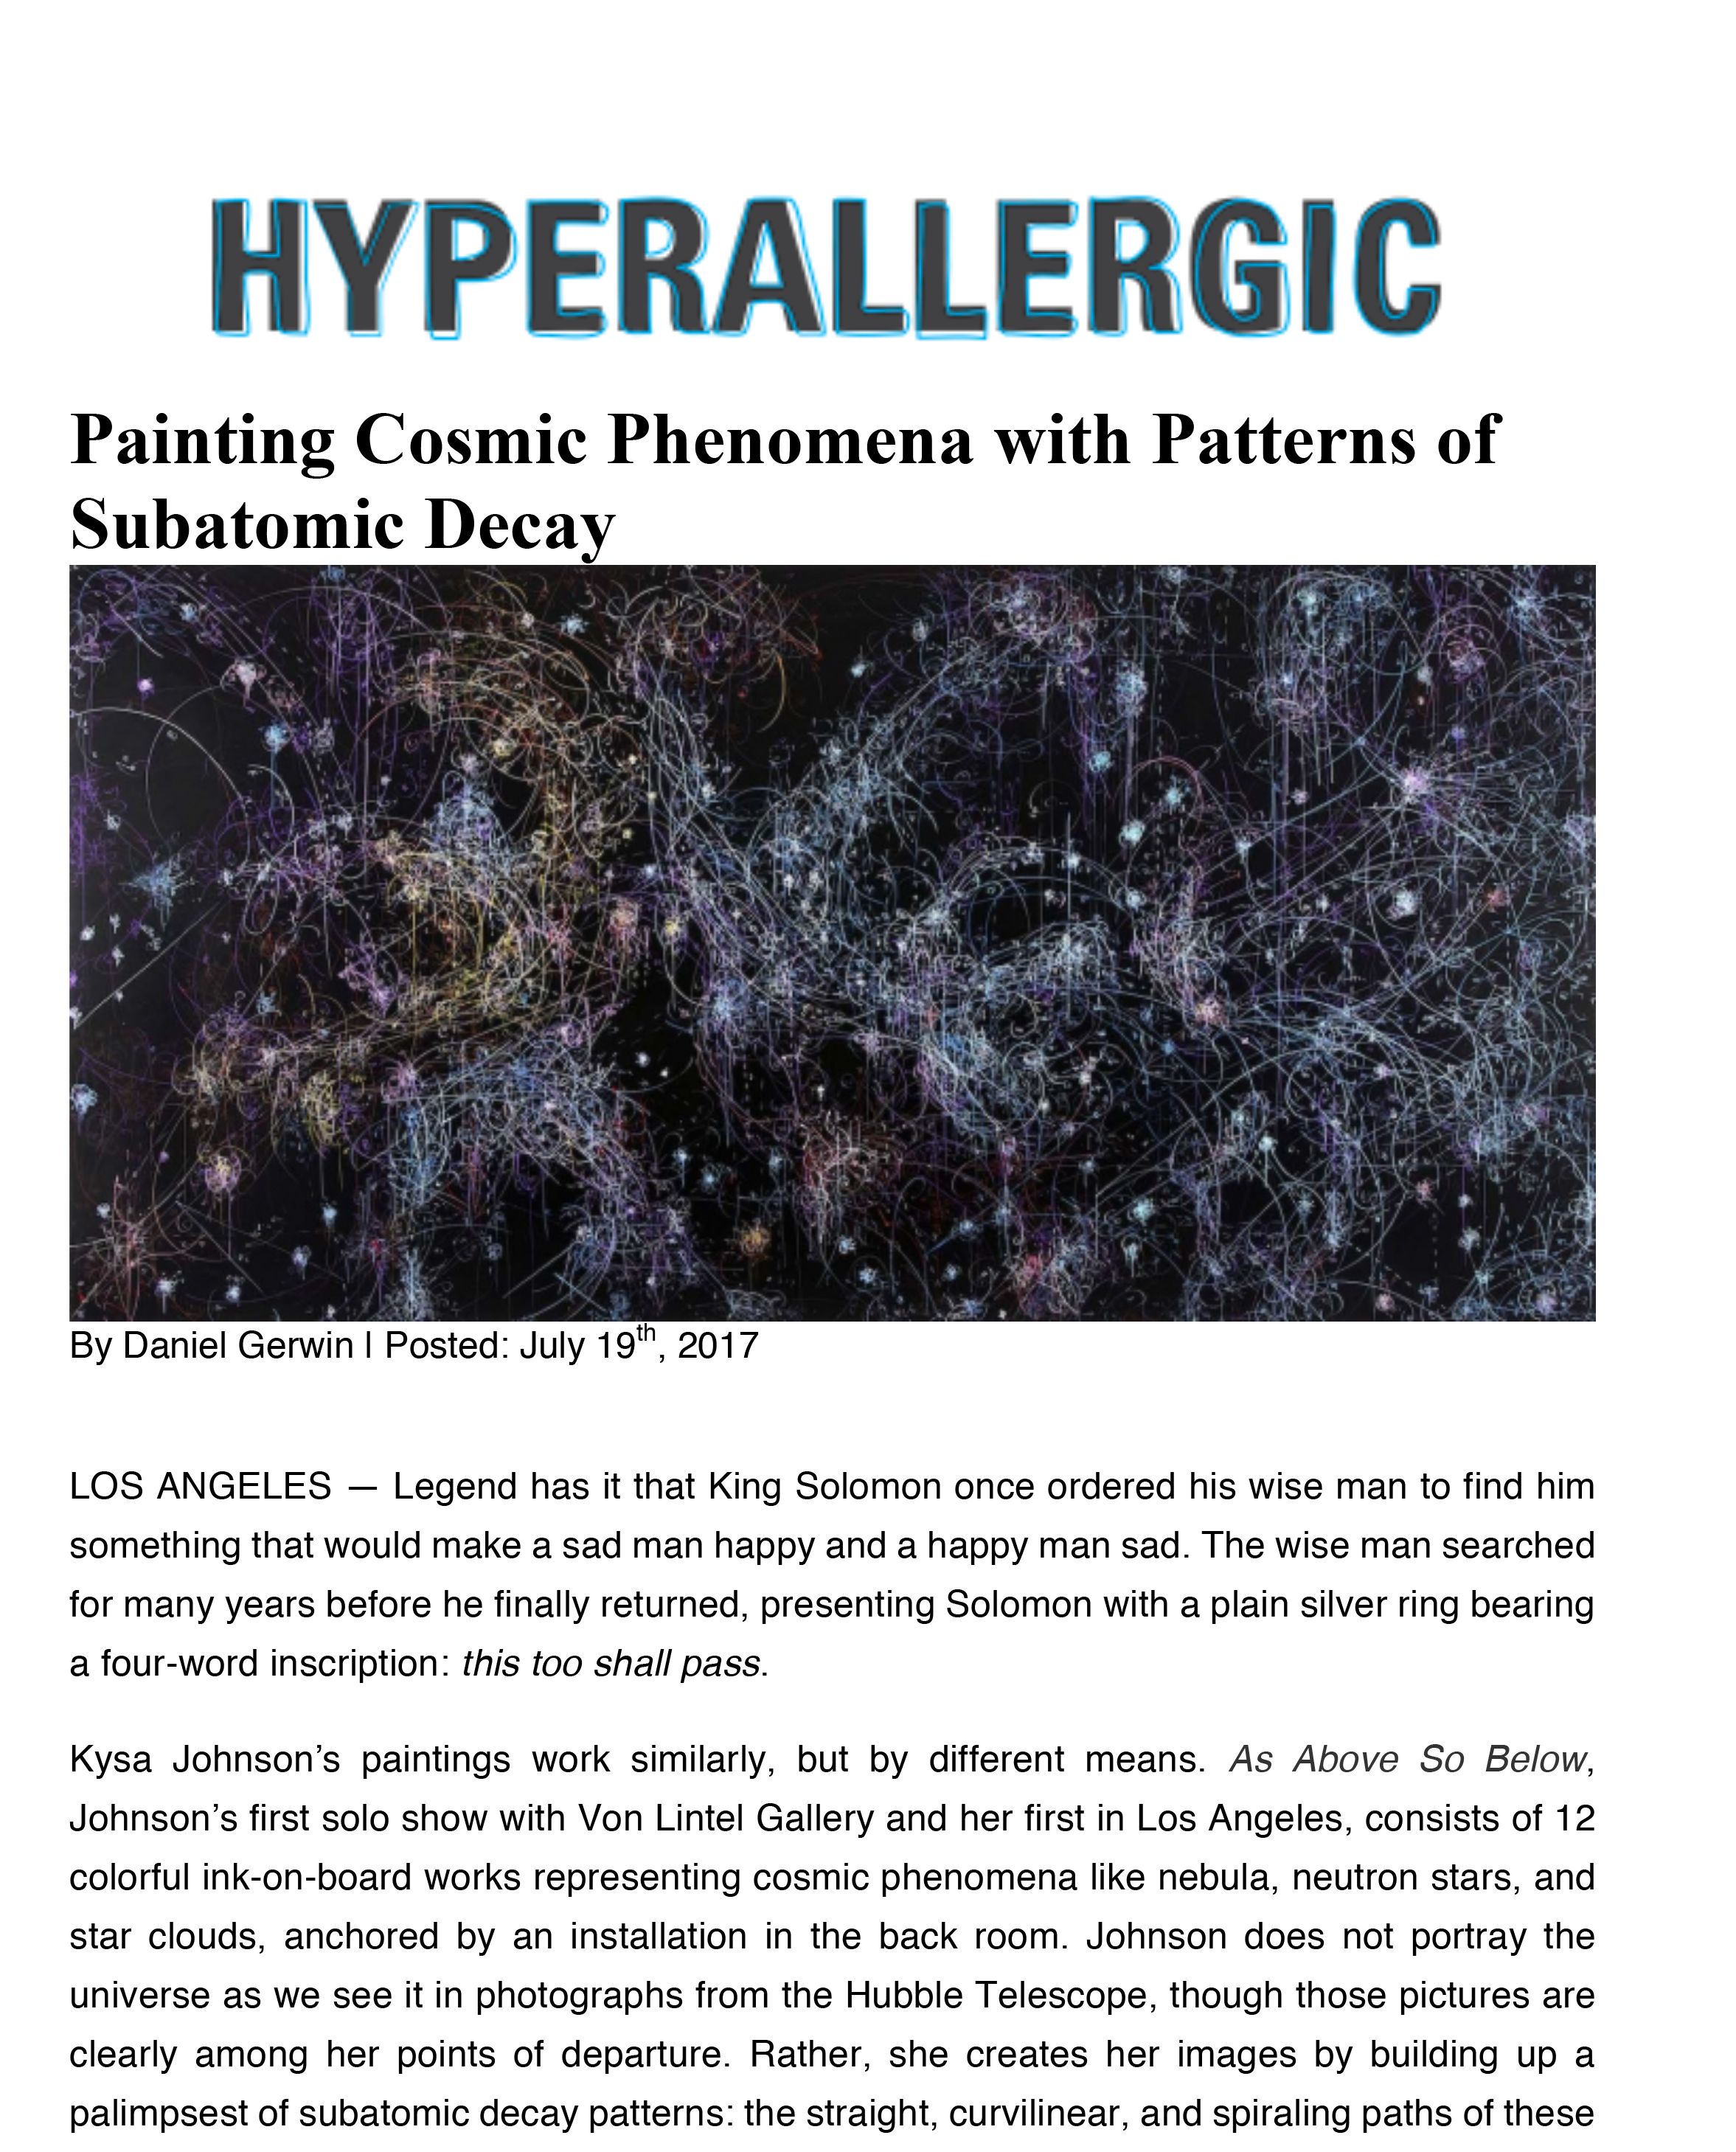 Hyperallergic - Painting Cosmic Phenomena with Patterns of Subatomic Decay